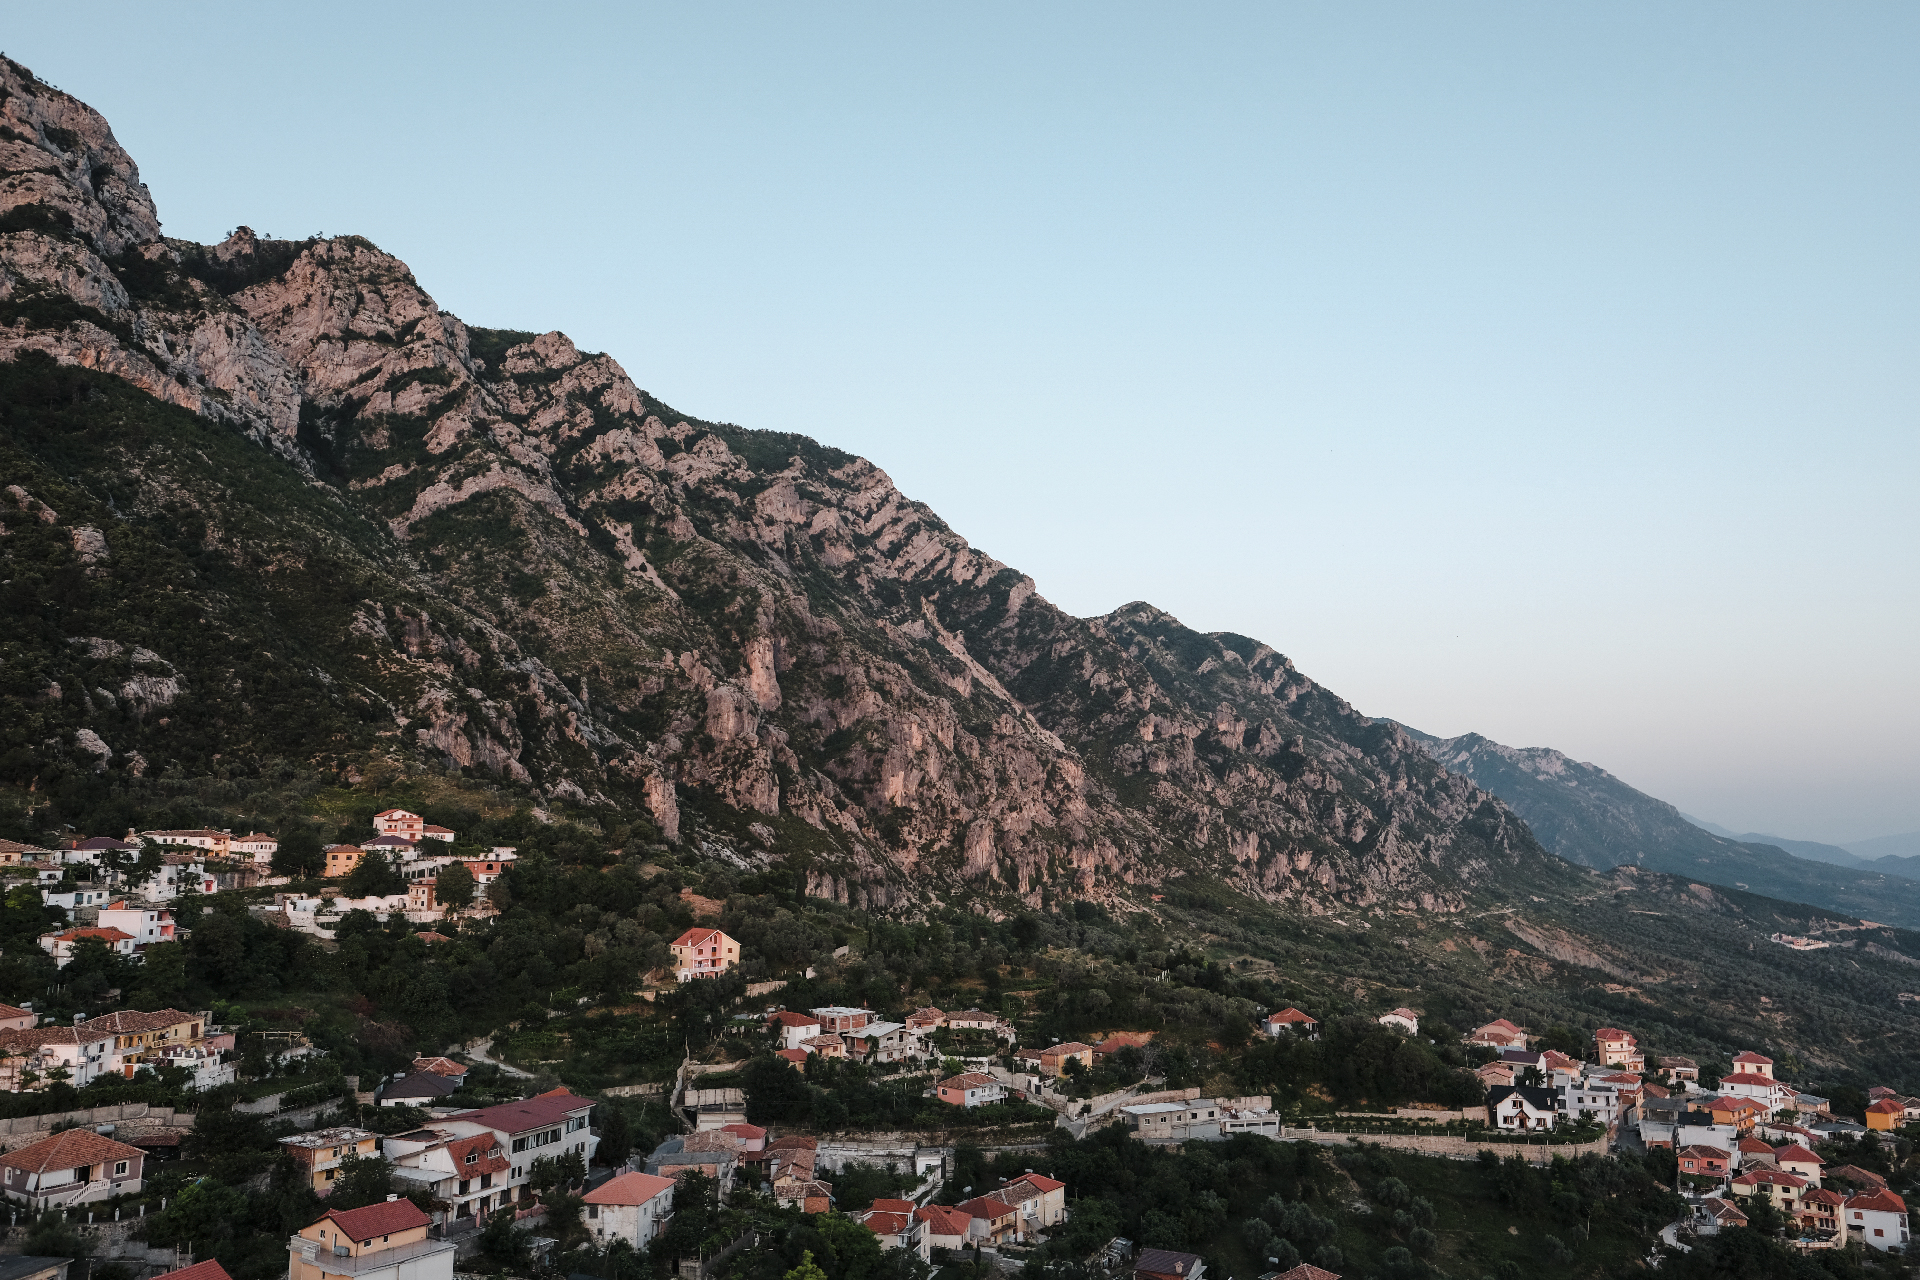 Sunset at Krujë with the mountains in backdrop